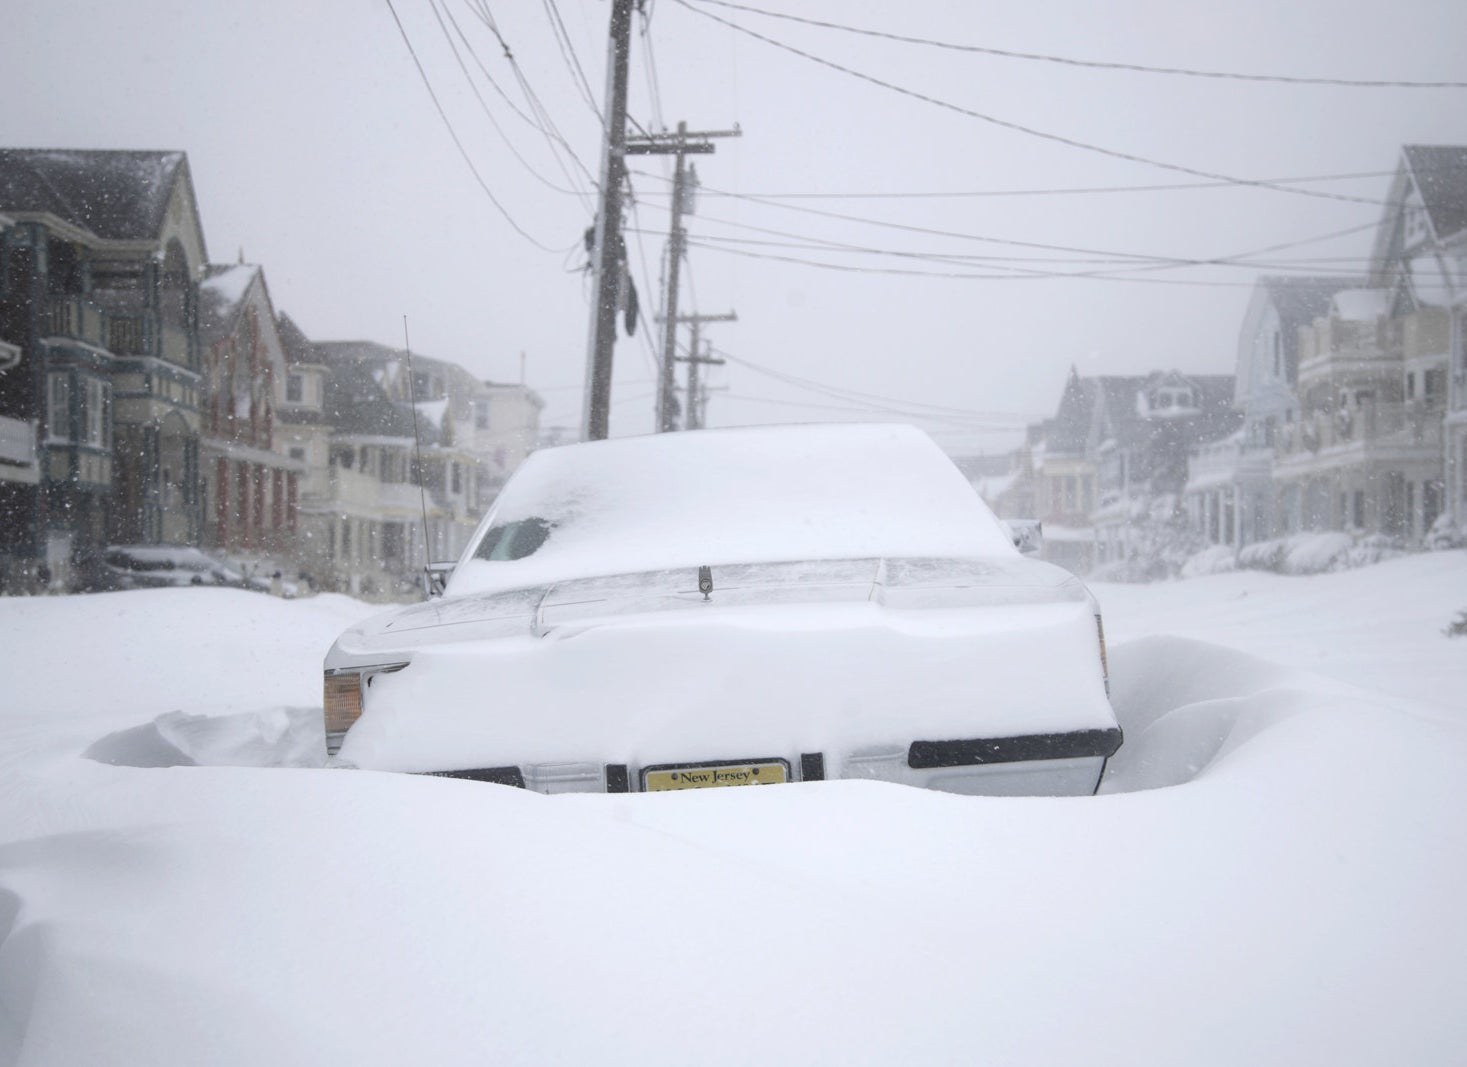 A parked vehicle is surrounded by snowdrifts along the Jersey Shore in Ocean Grove, New Jersey.